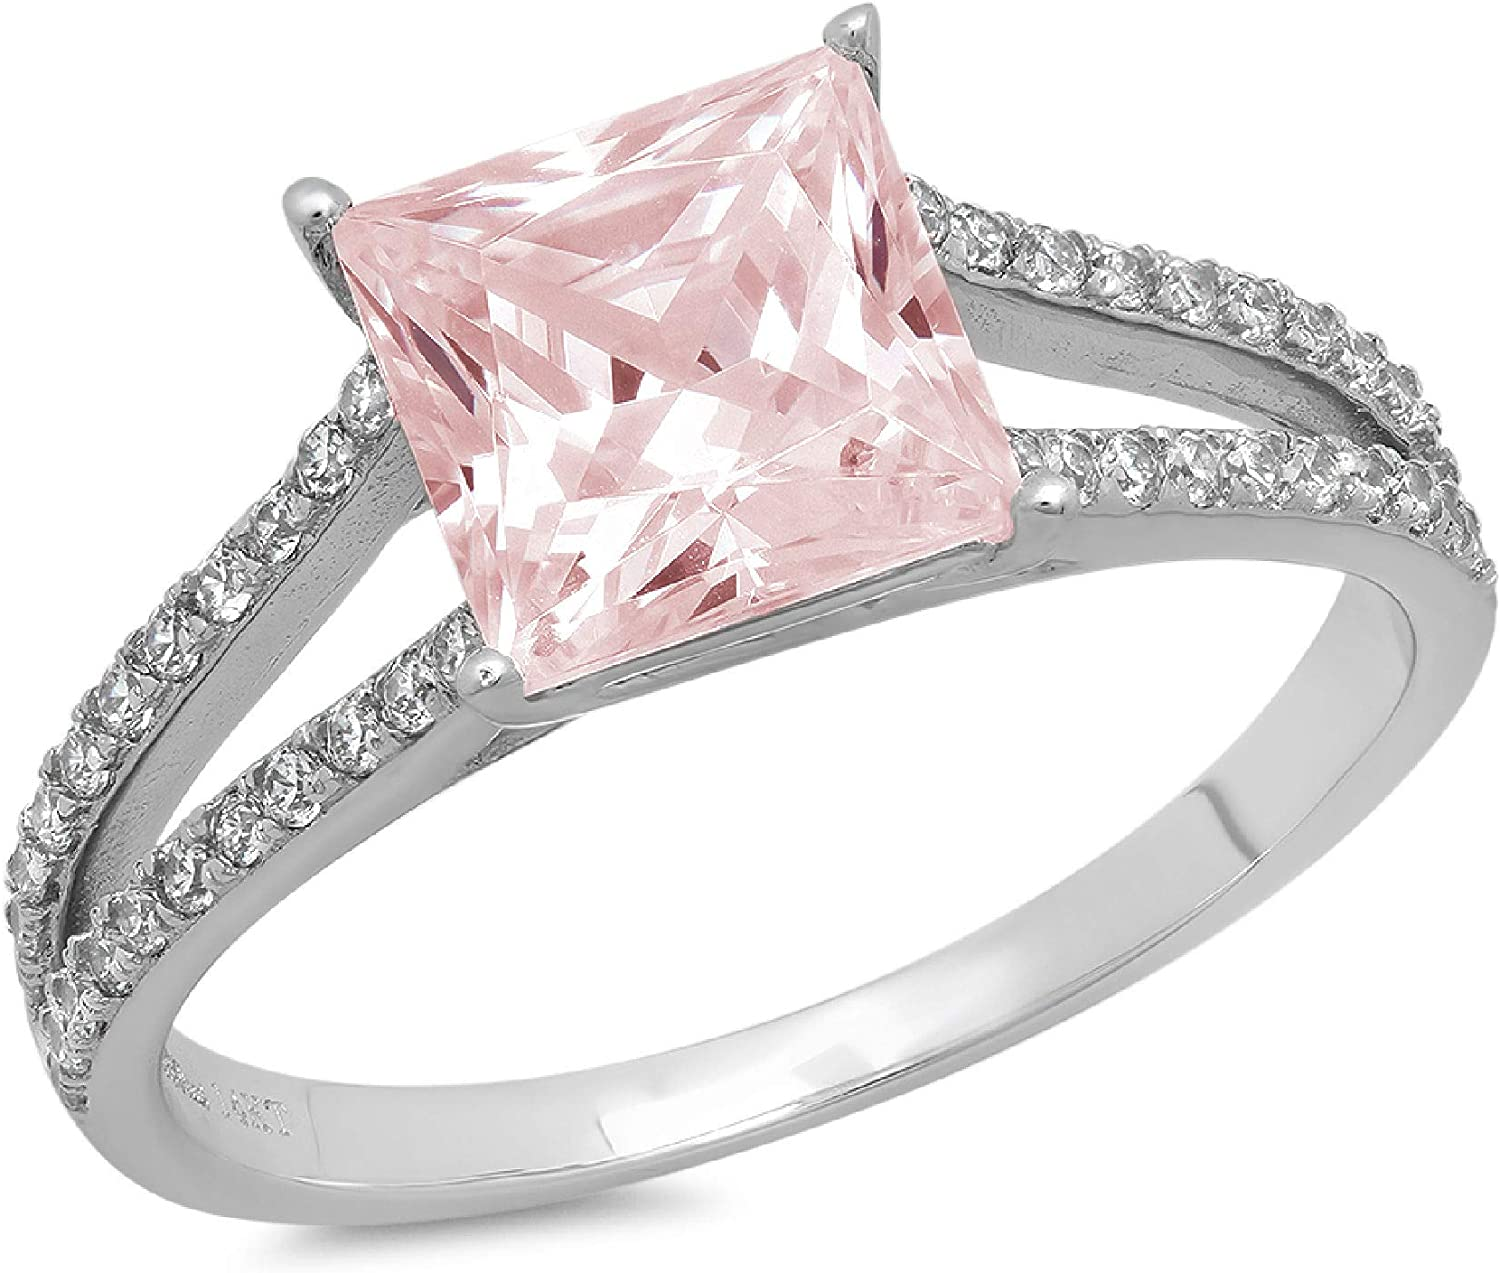 2.42 ct Princess Cut Solitaire Accent split shank Genuine Flawless Pink Simulated Diamond Gemstone Engagement Promise Statement Anniversary Bridal Wedding Ring Solid 18K White Gold